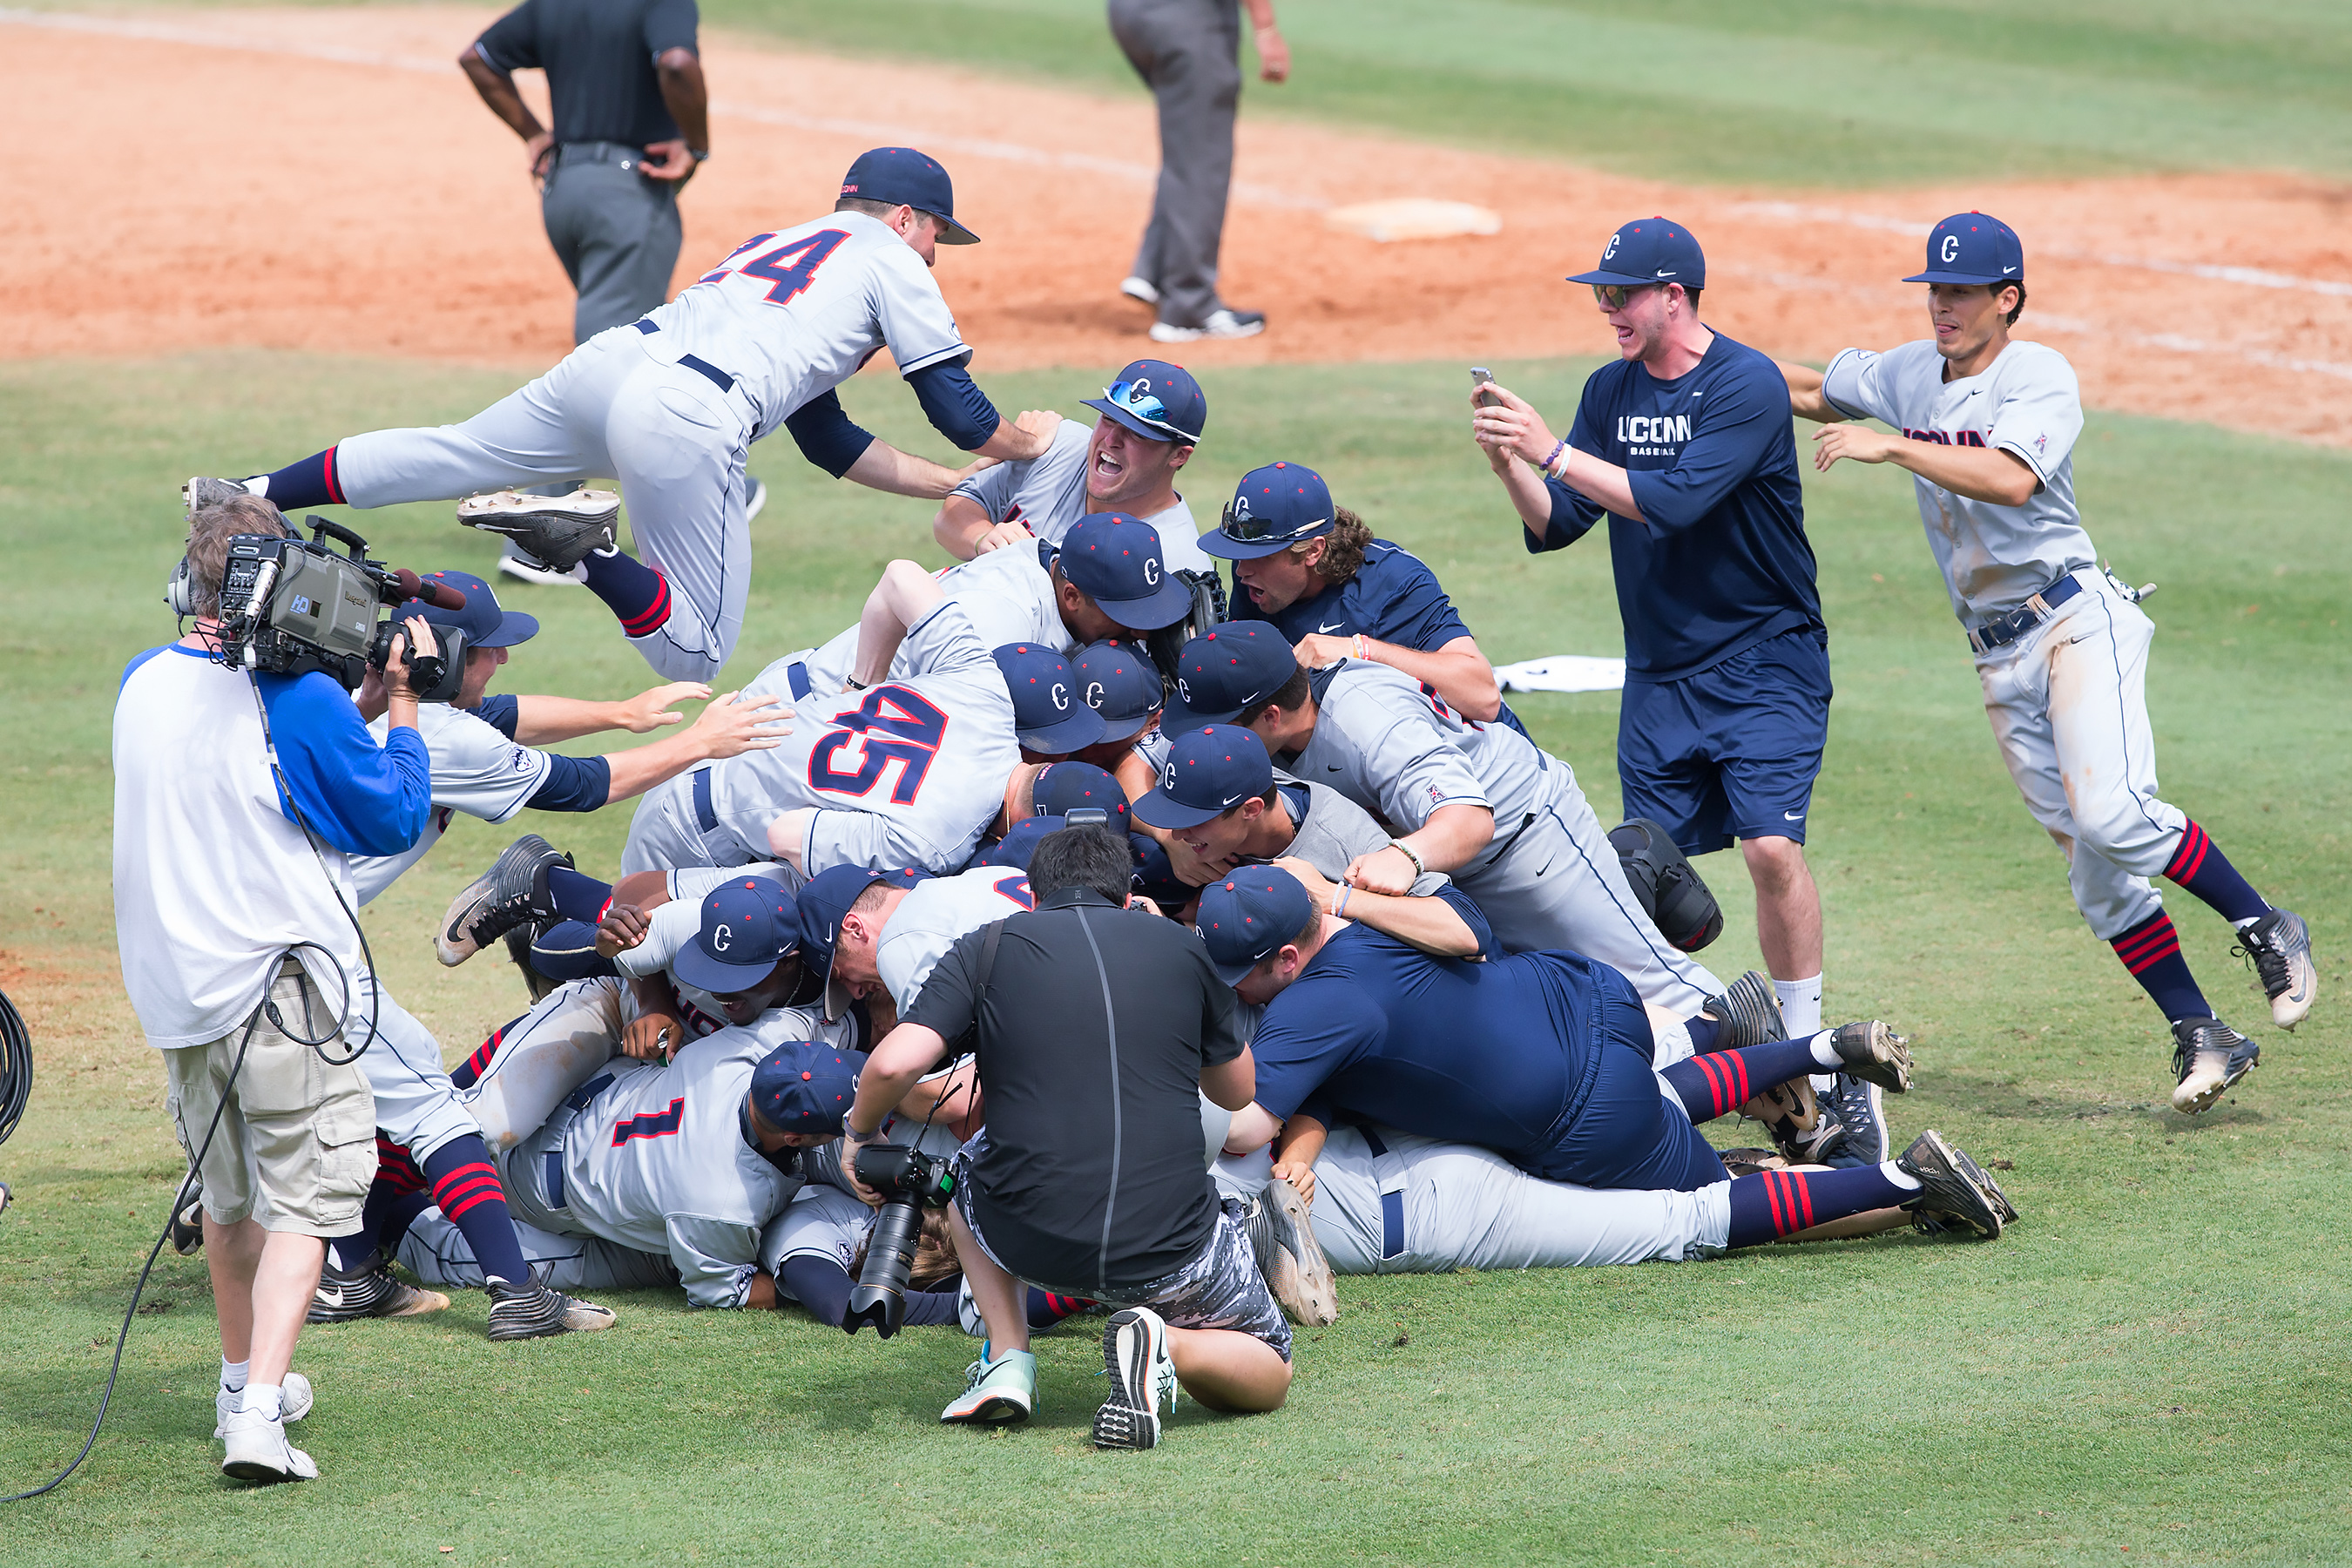 The team celebrates their 7-2 win over Houston to take the 2016 AAC Championship title. (Stephen Slade '89 (SFA) for UConn)